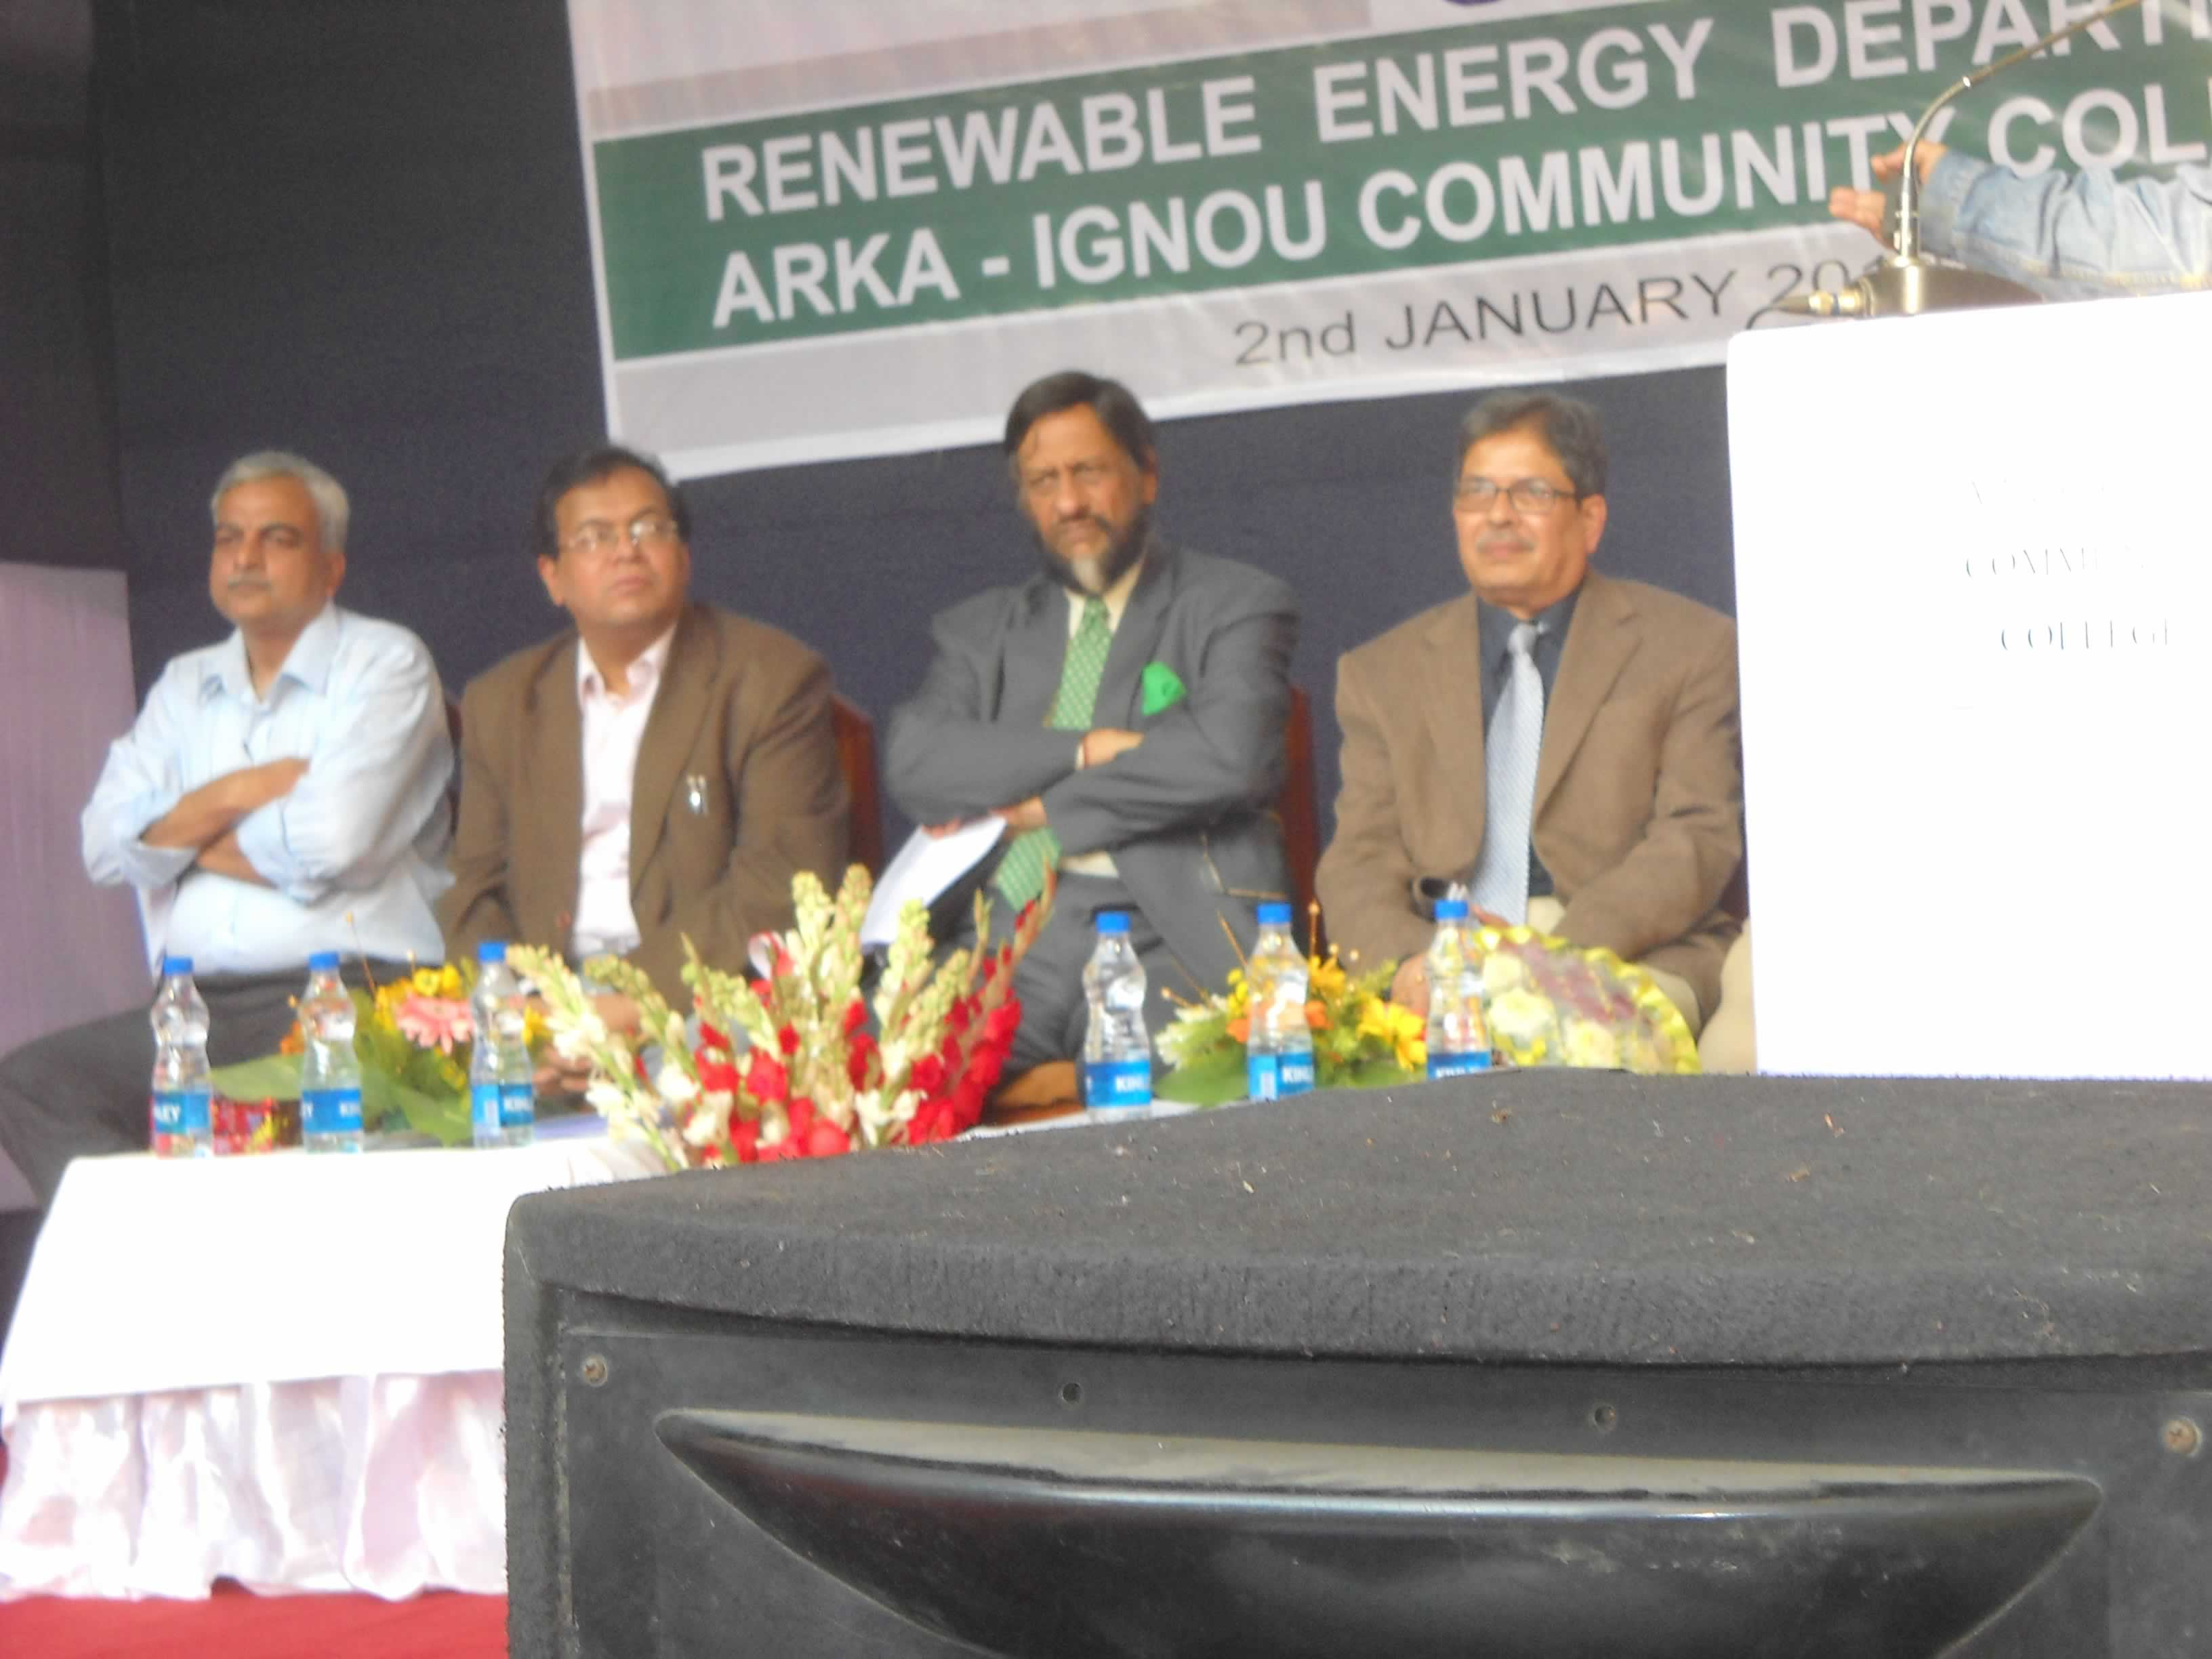 Dr.R.K.Pachauri & other Dignitaries in the dias.